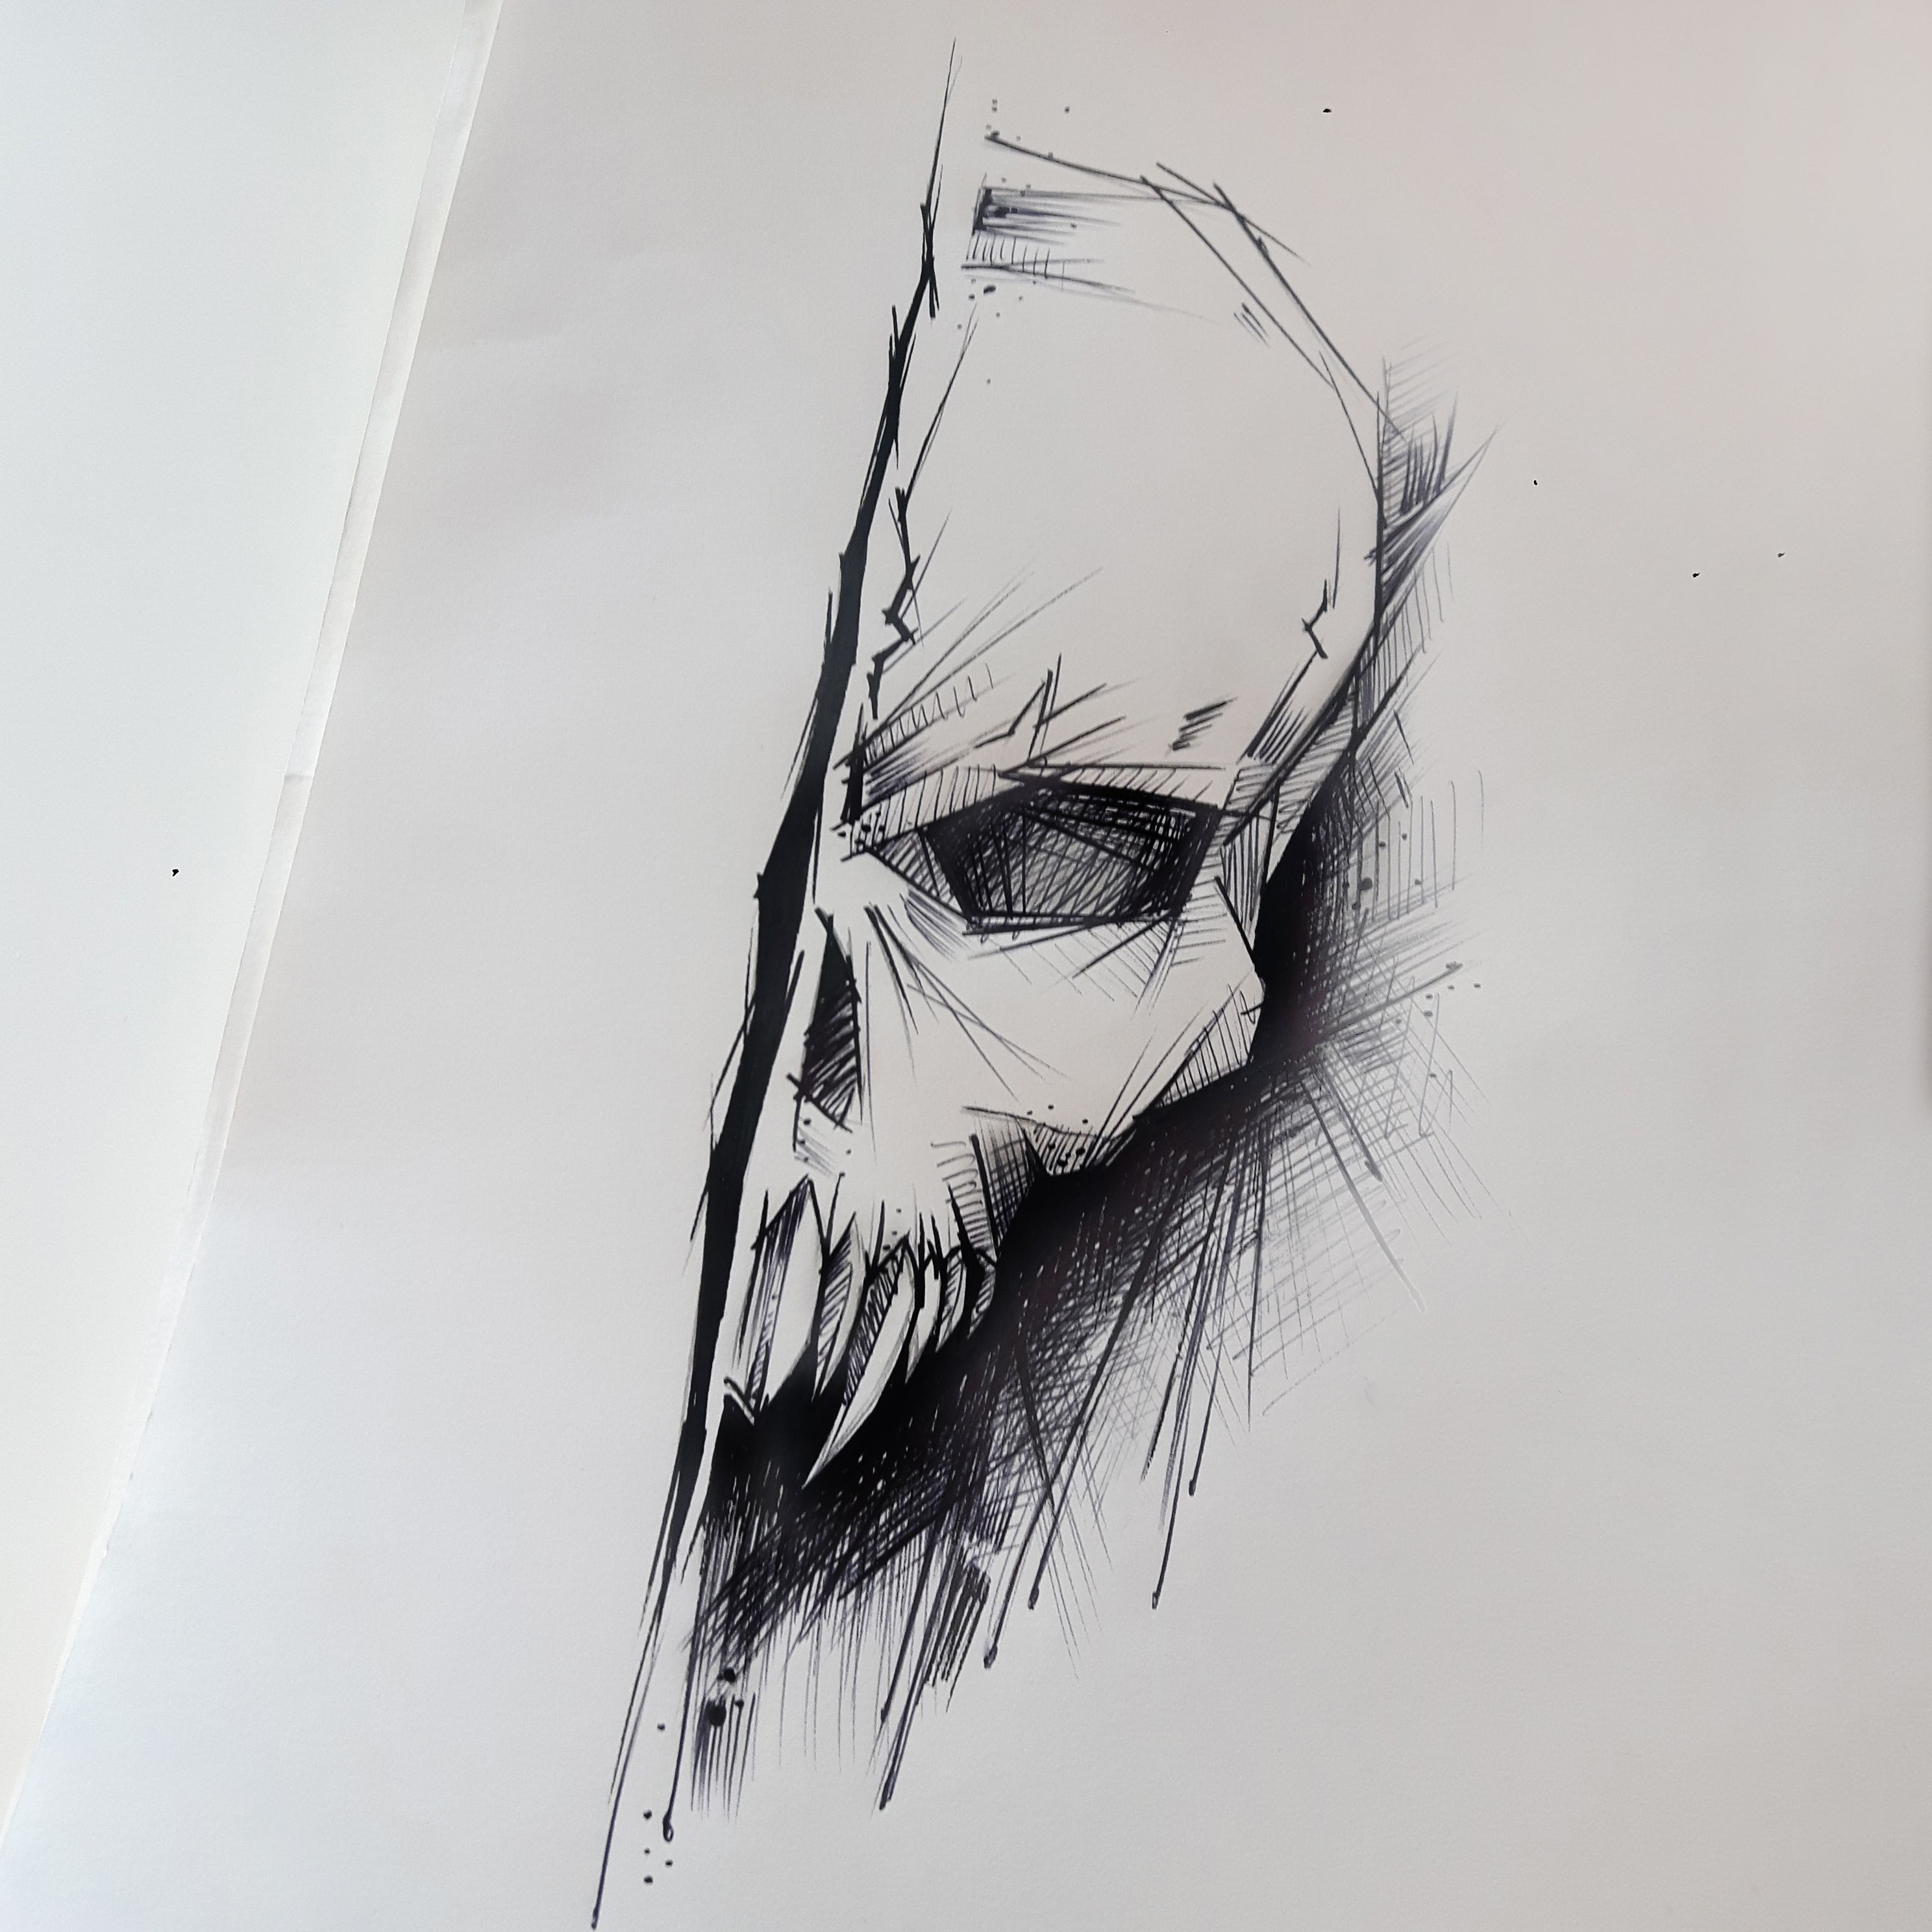 Skull Tattoo Design By Rysaatattoo Tattoodesign Tattoo Design Sketch Sketchstyle Project Tattooproj Skulls Drawing Skull Art Drawing Best Tattoo Designs